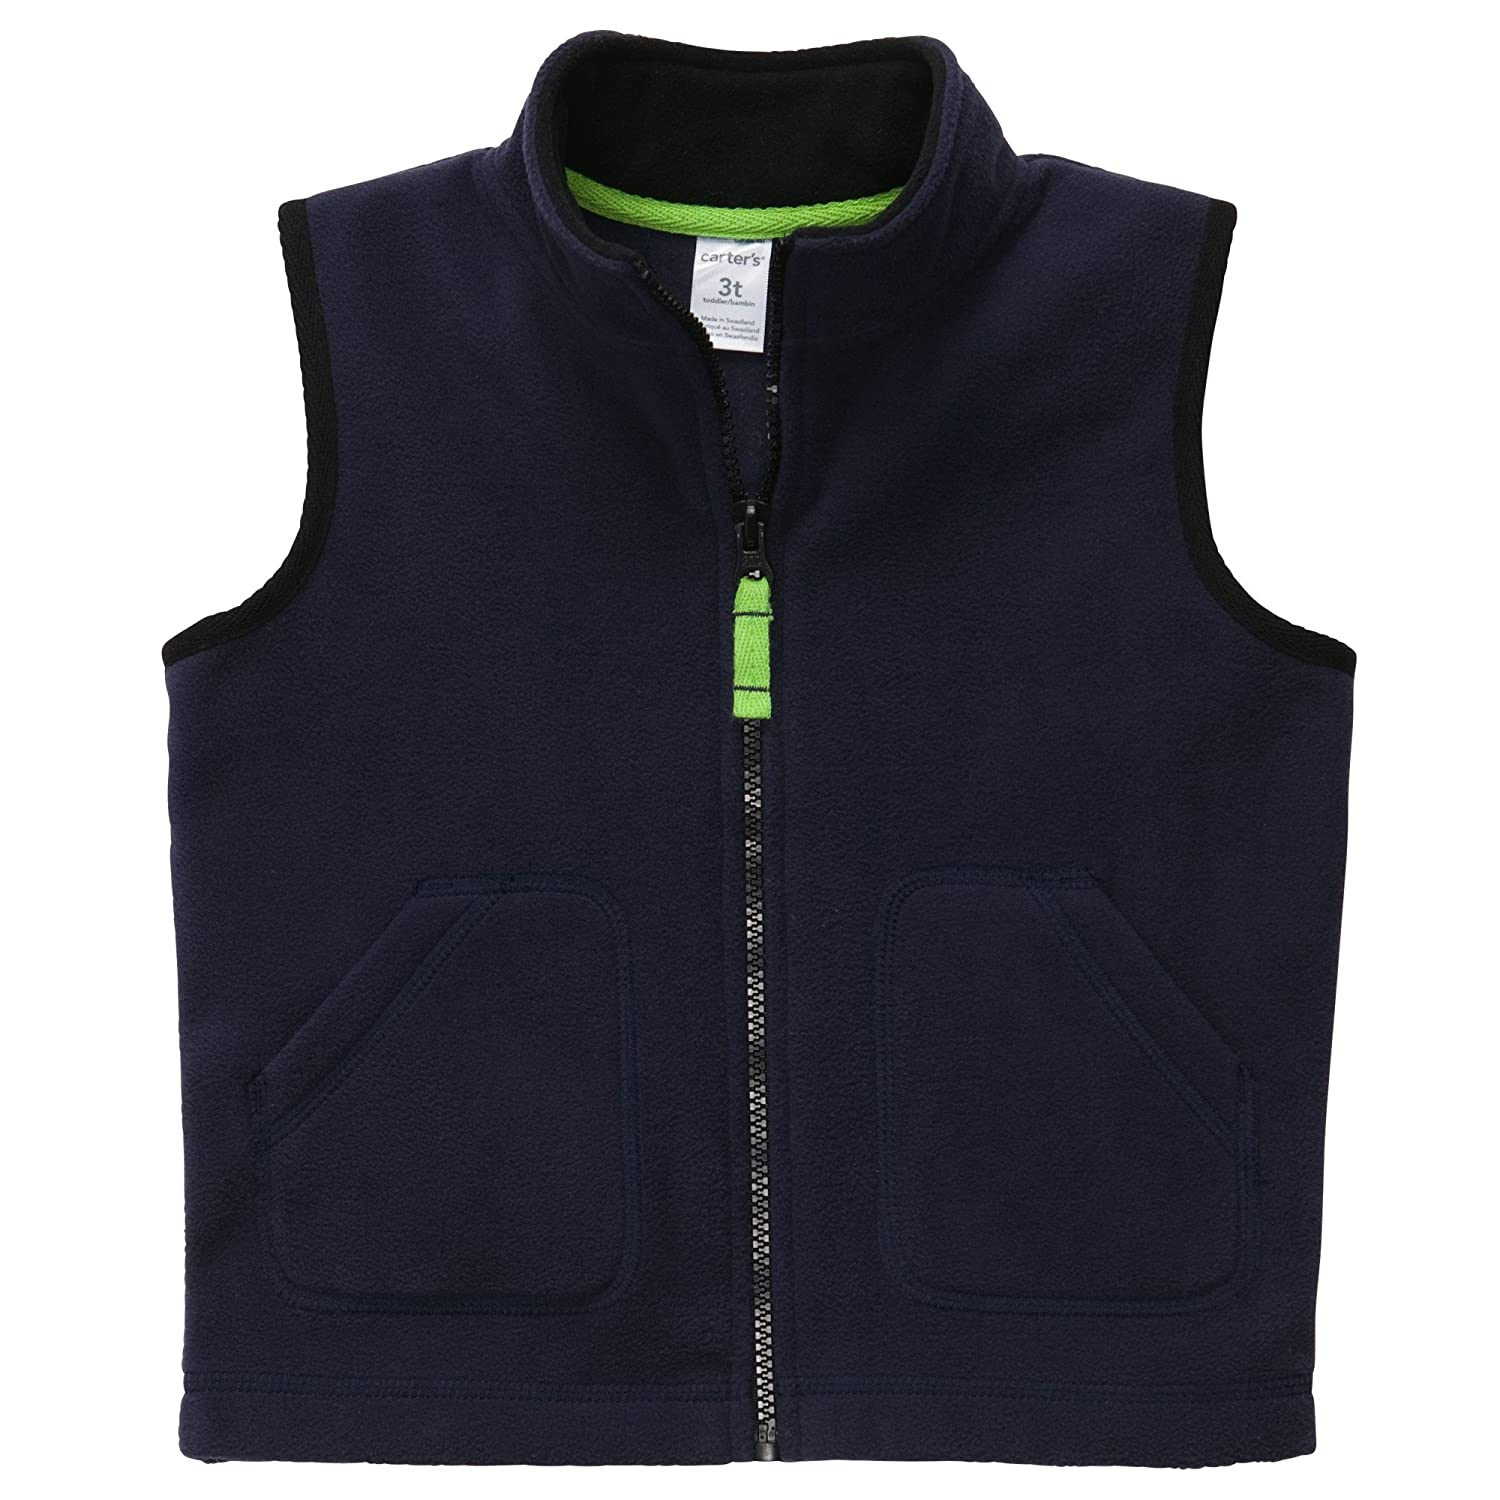 Carter's Boys Bright Yellow Fleece Zip-up Vest Navy)